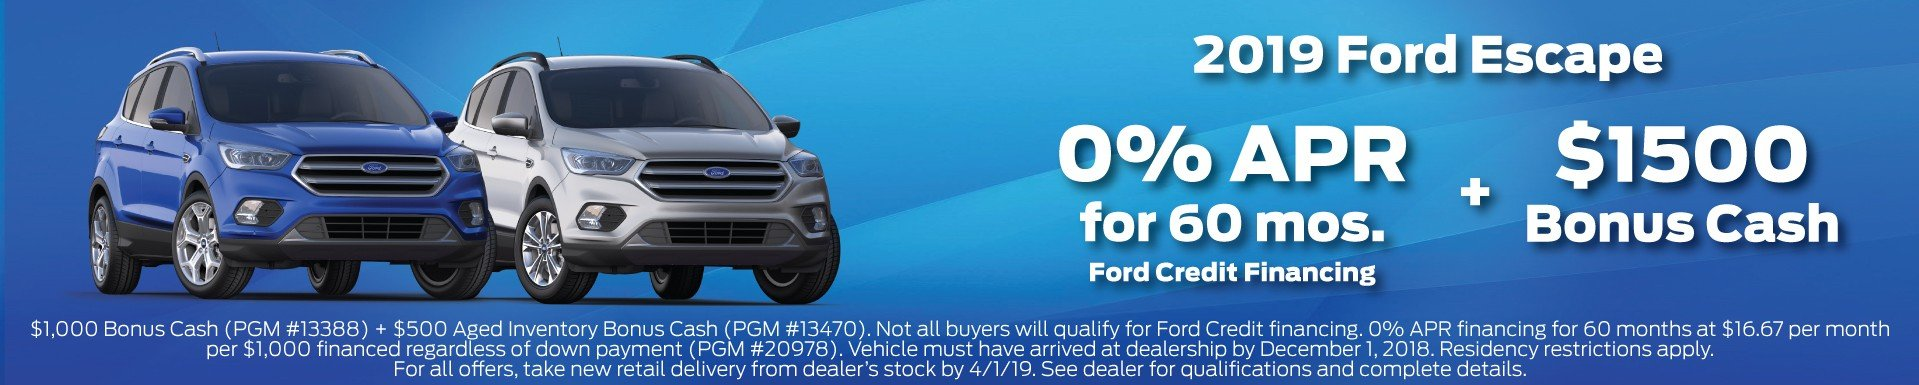 2019 Ford Escape Offer 3-2019